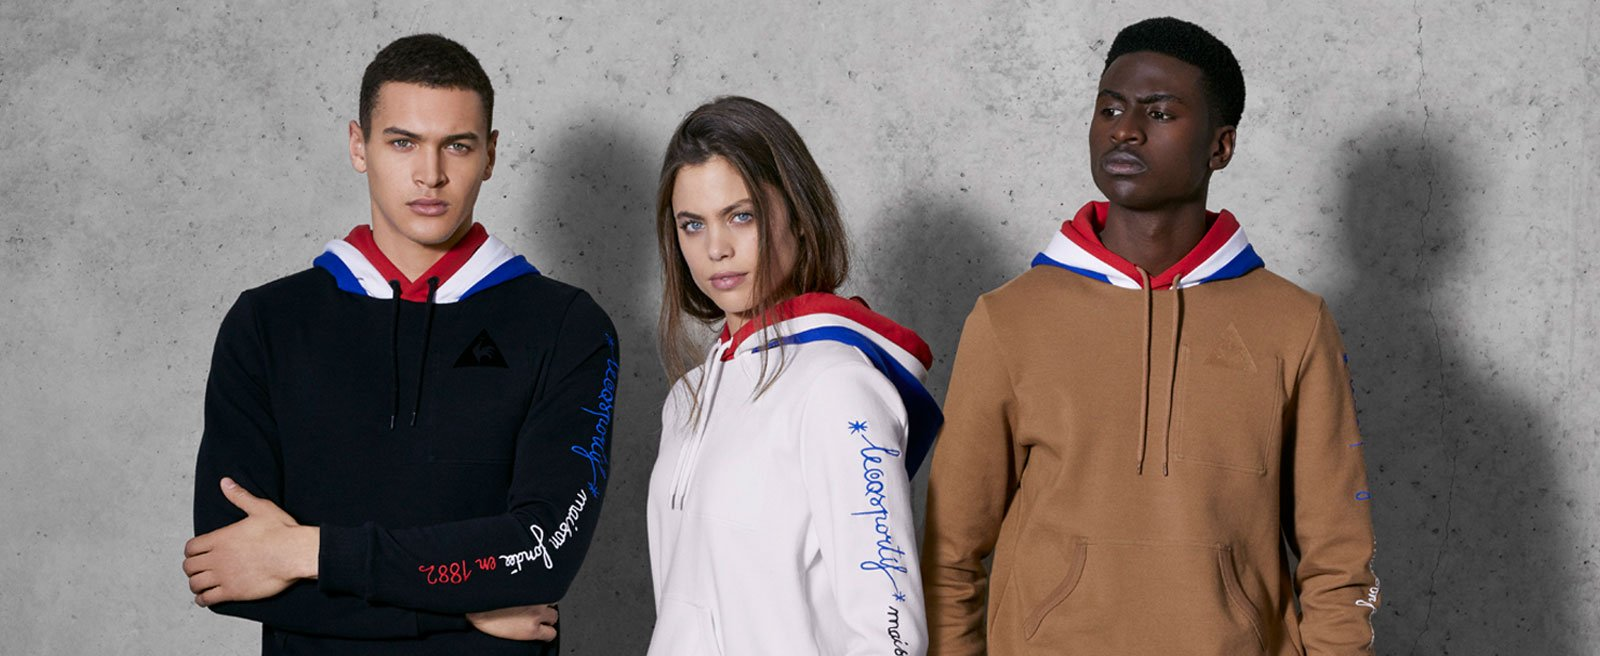 Boutique Le Coq Sportif - Nailloux Outlet Village